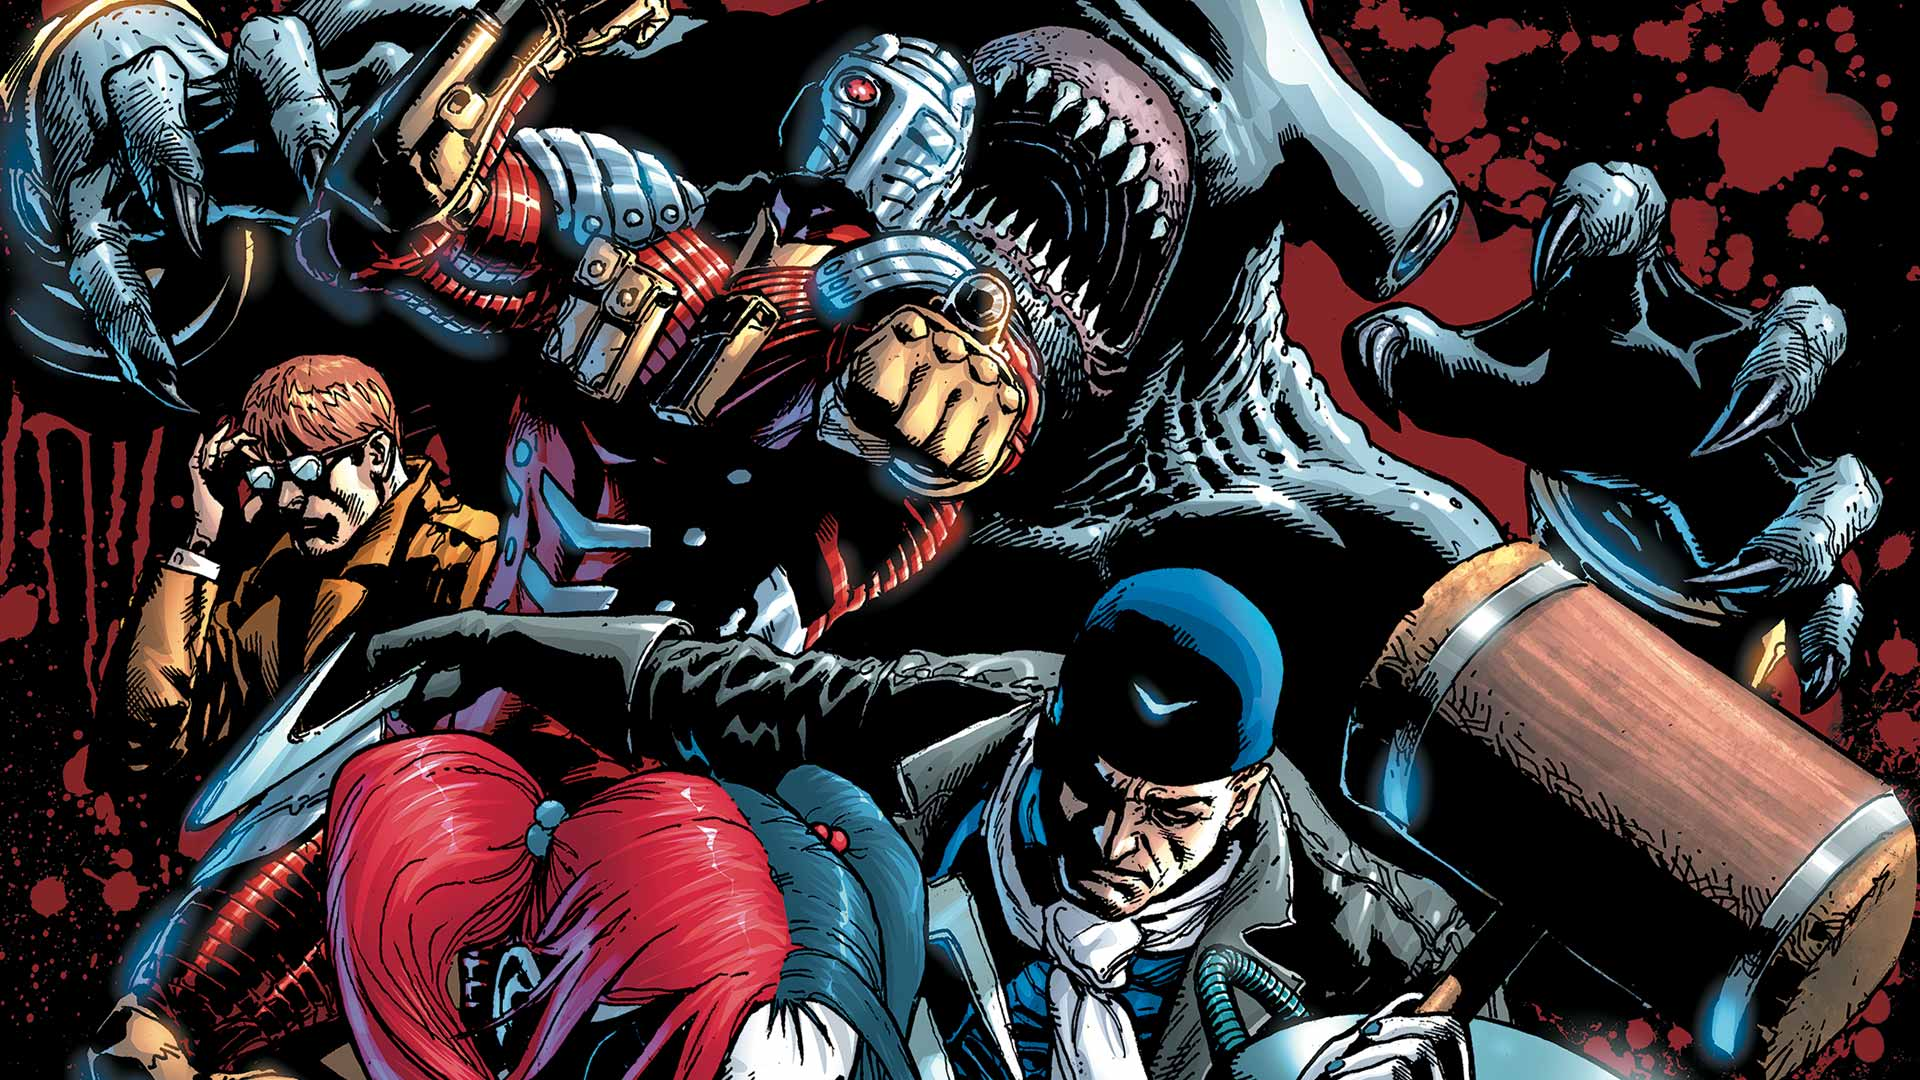 Suicide Squad Wallpaper   HD Wallpapers Backgrounds of Your Choice 1920x1080